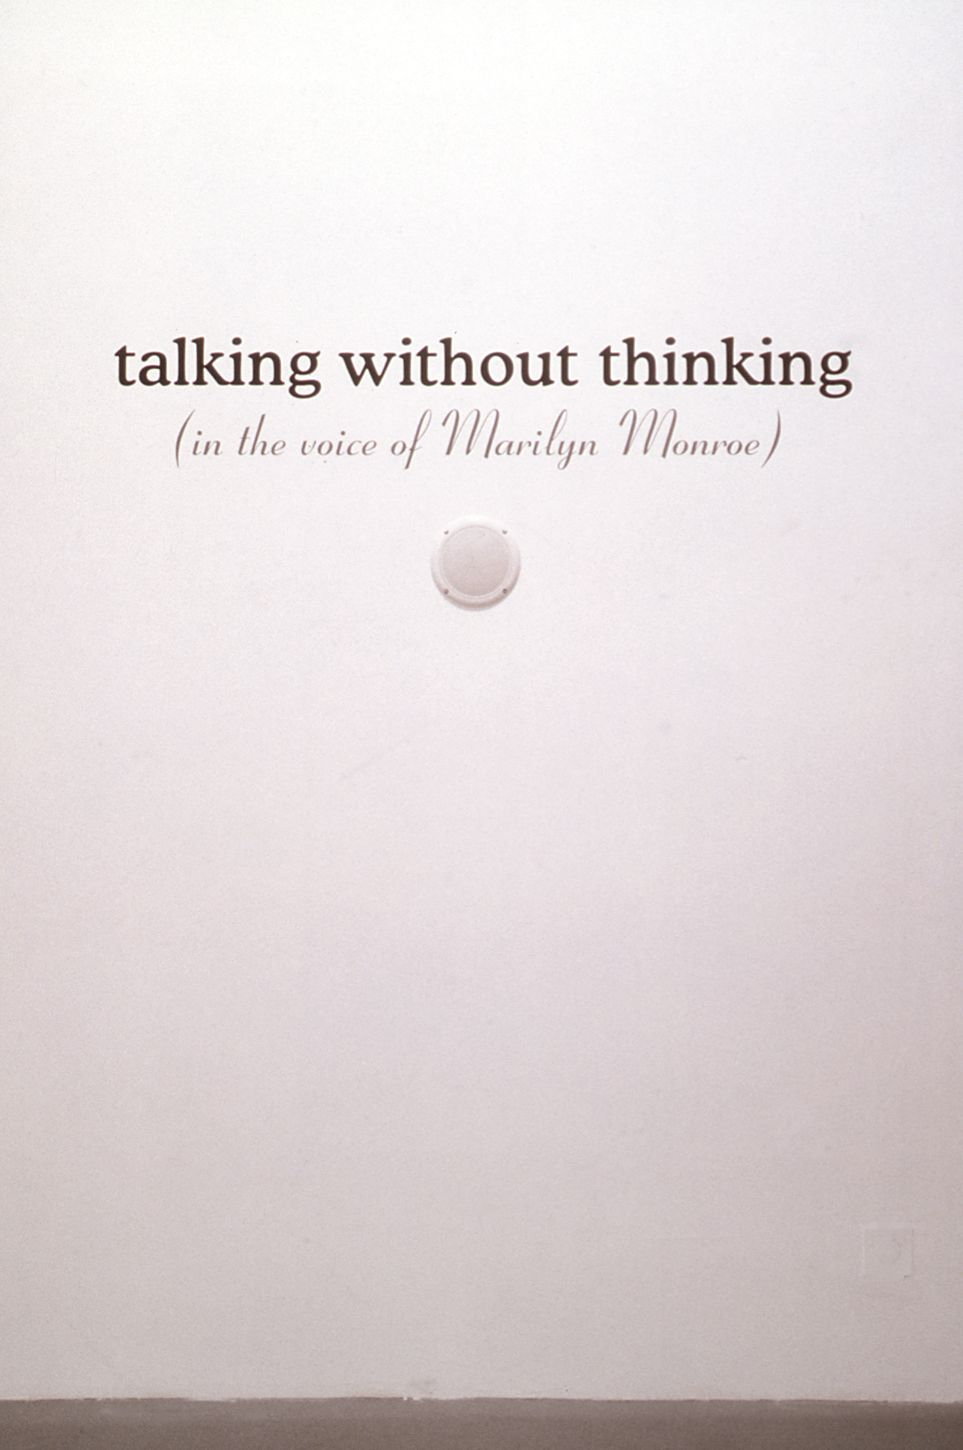 Talking Without Thinking (in the voice of Marilyn Monroe), 2001, Wall text, shelf, cd, portable cd player